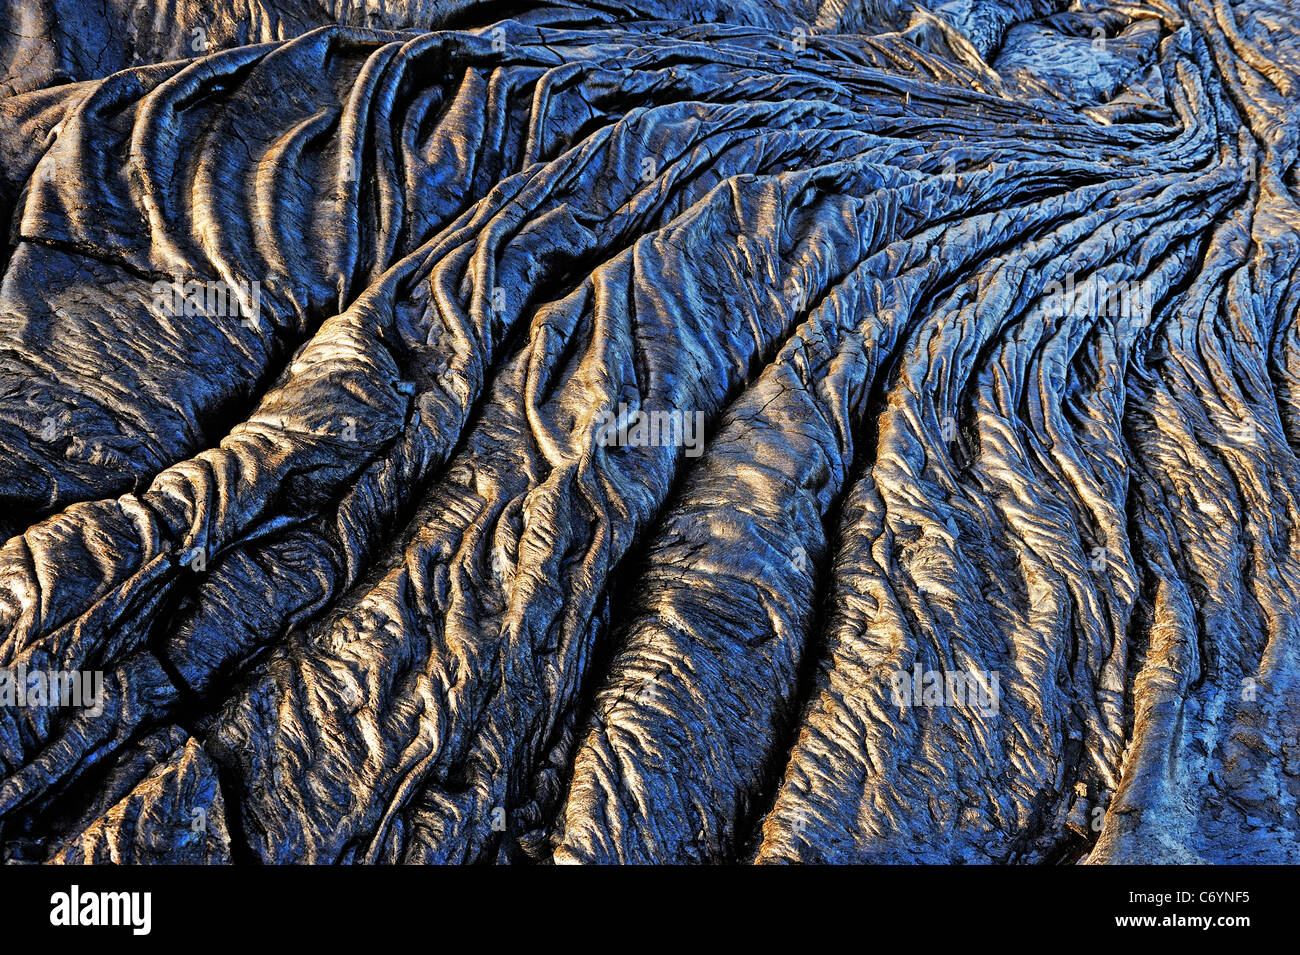 Cooled pahoehoe lava flow, Kilauea Volcano, Big Island, Hawaii, Usa - Stock Image